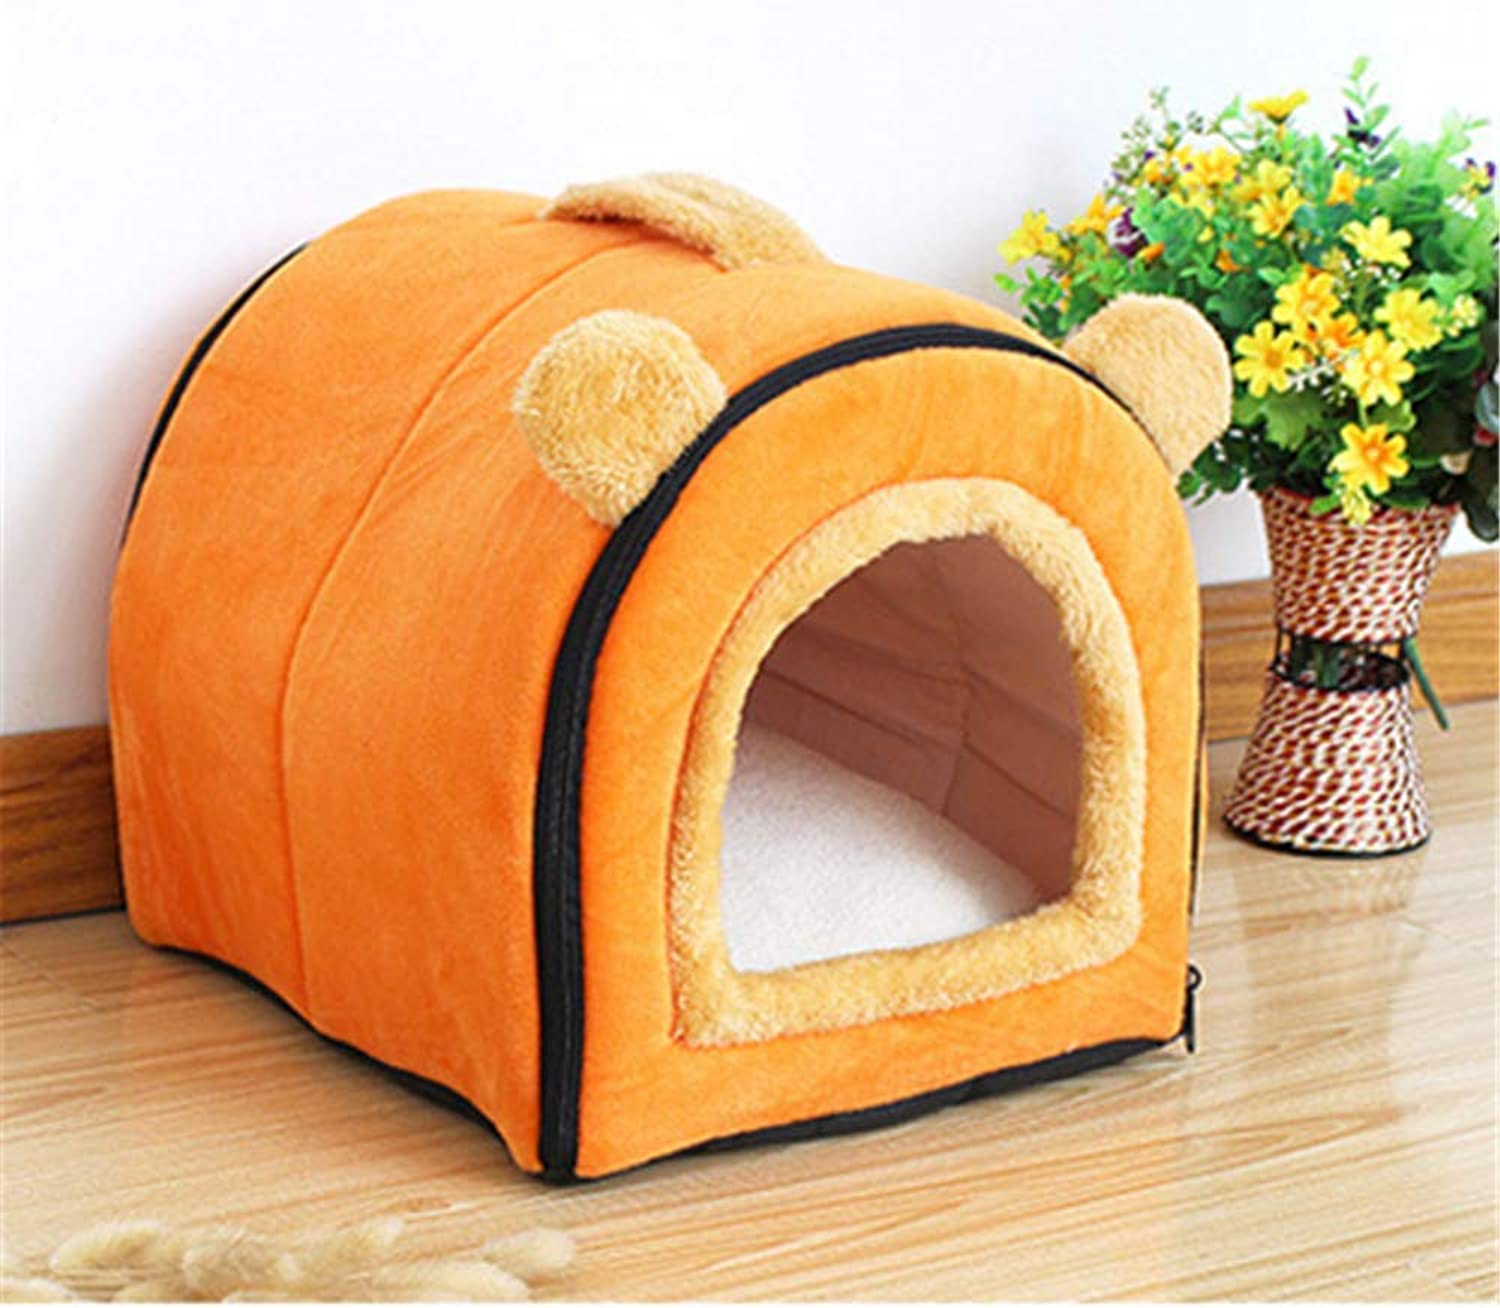 GBJ1 Pet Cat Igloo Bed Small Dog Soft Bed Met House (S M L) (M  16.912.913.3in, orange)